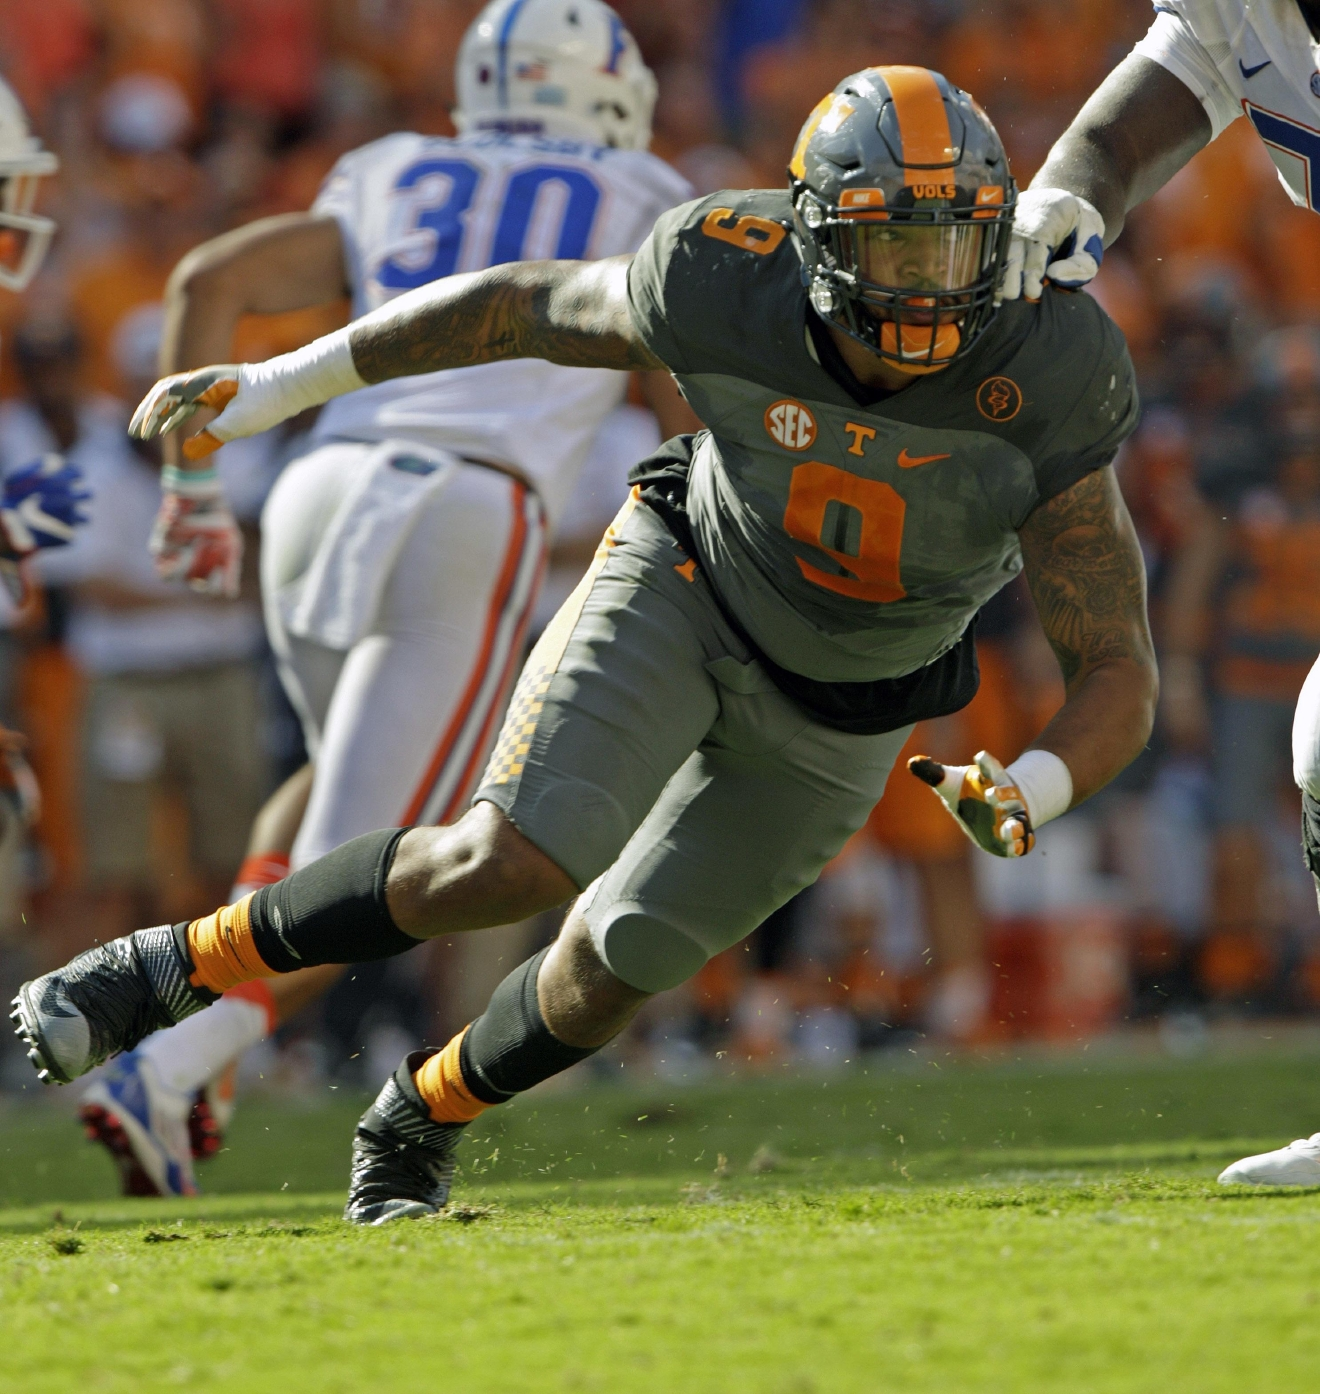 FILE - In this Sept. 24, 2016, file photo, Tennessee defensive end Derek Barnett (9) plays against Florida in an NCAA college football game, in Knoxville, Tenn. Barnett was selected to the 2016 AP All-America college football team, Monday, Dec. 12, 2016.  (AP Photo/Wade Payne, File)